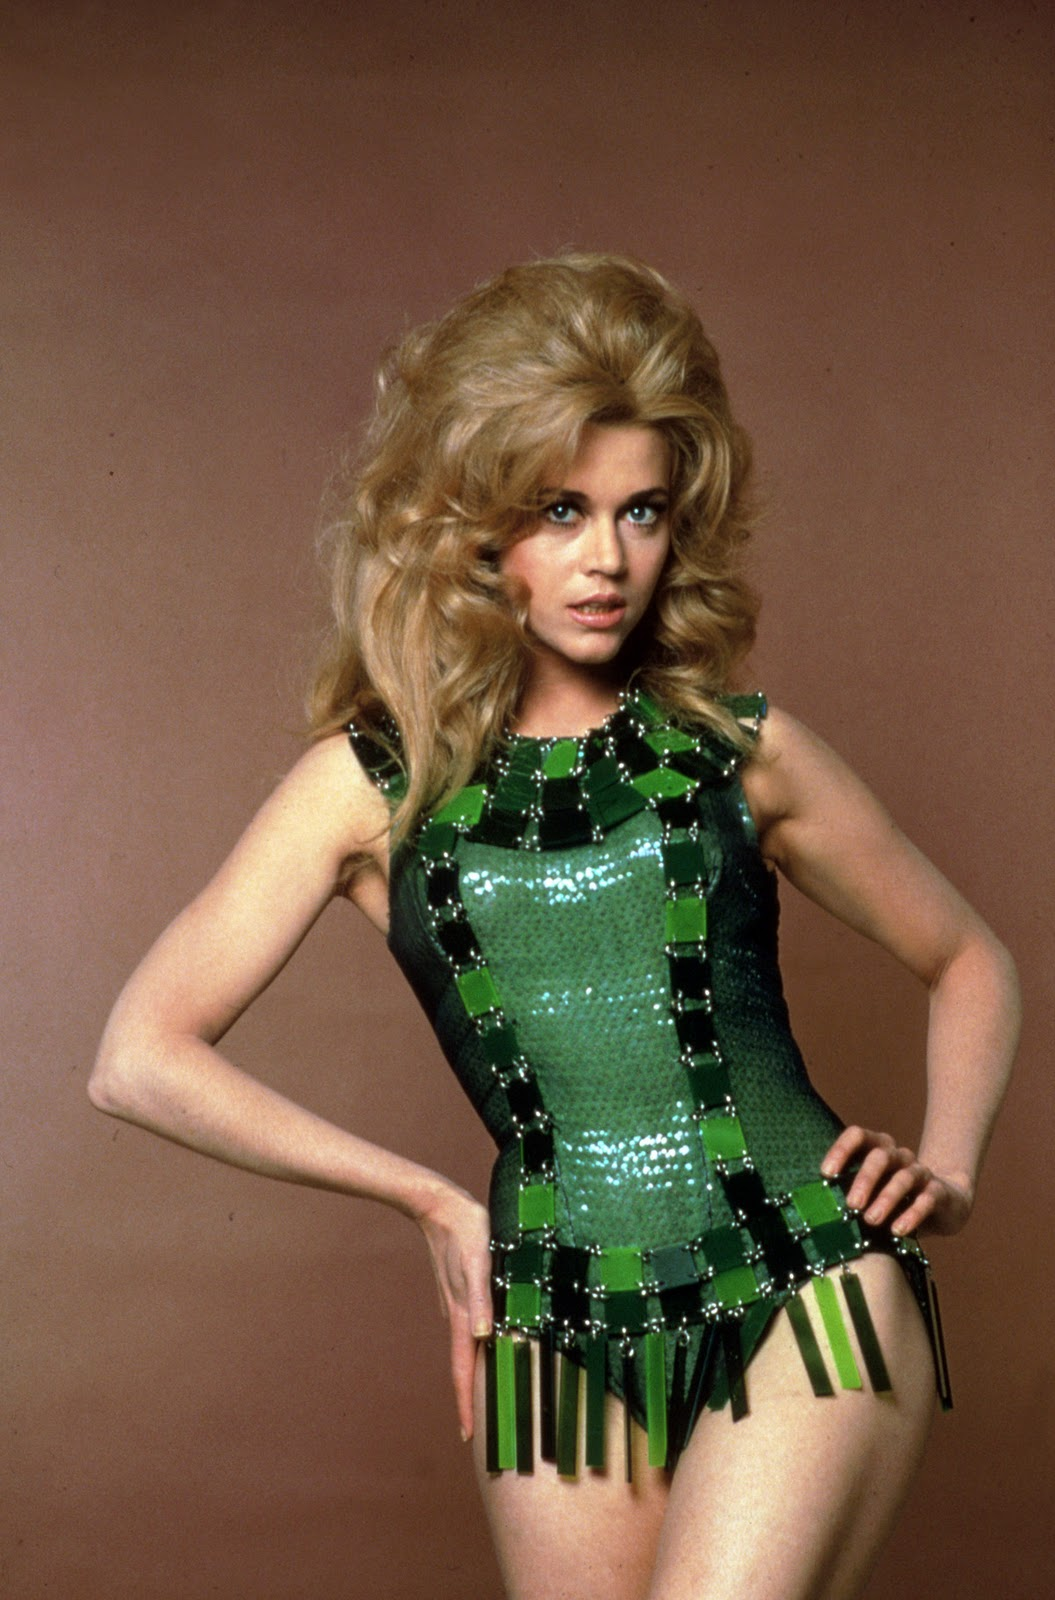 Are not Jane fonda hot pic apologise, but